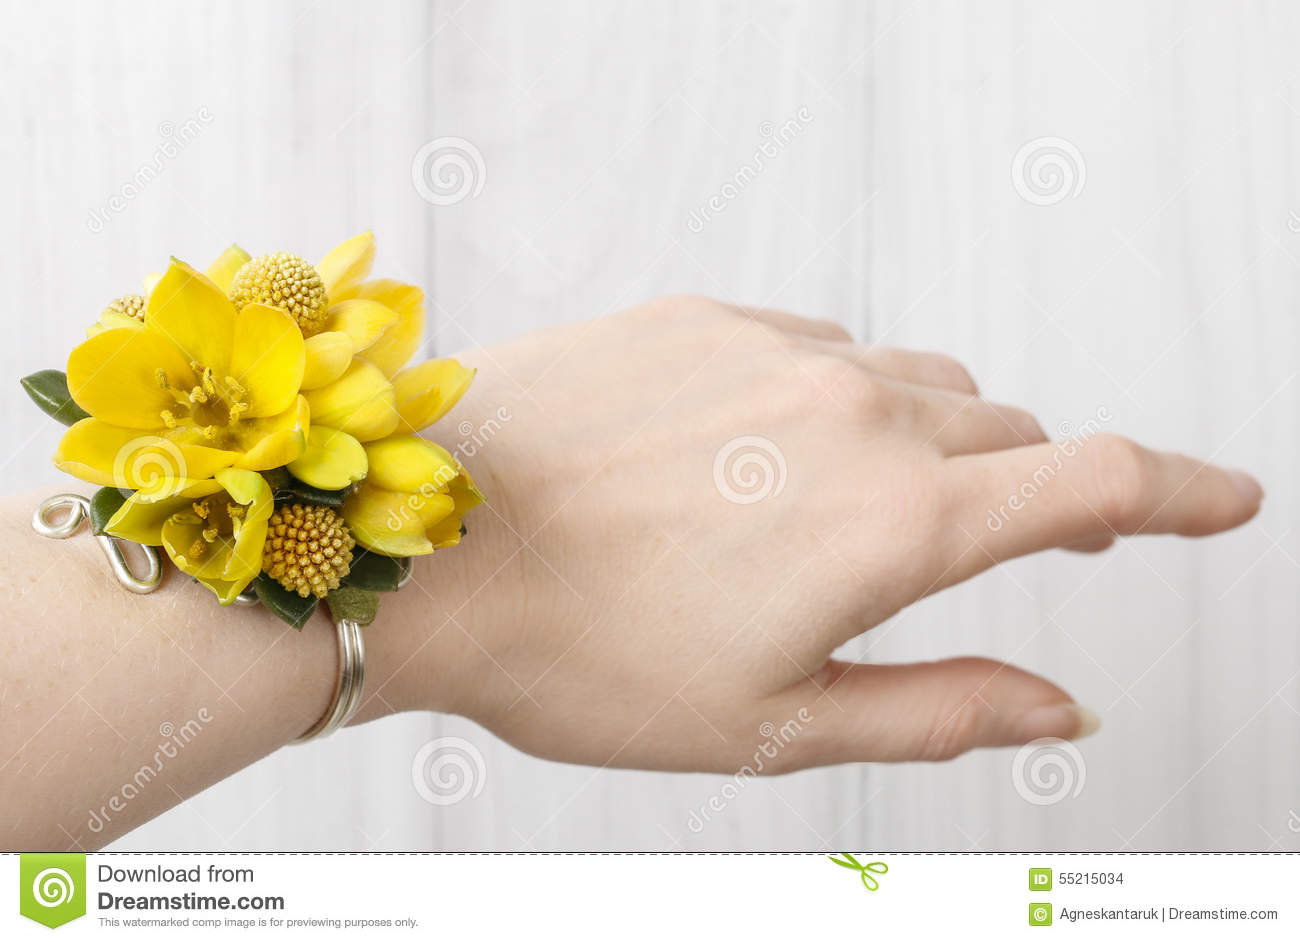 Wrist Corsage Made Of Yellow Flowers Stock Photo Image Of Decor